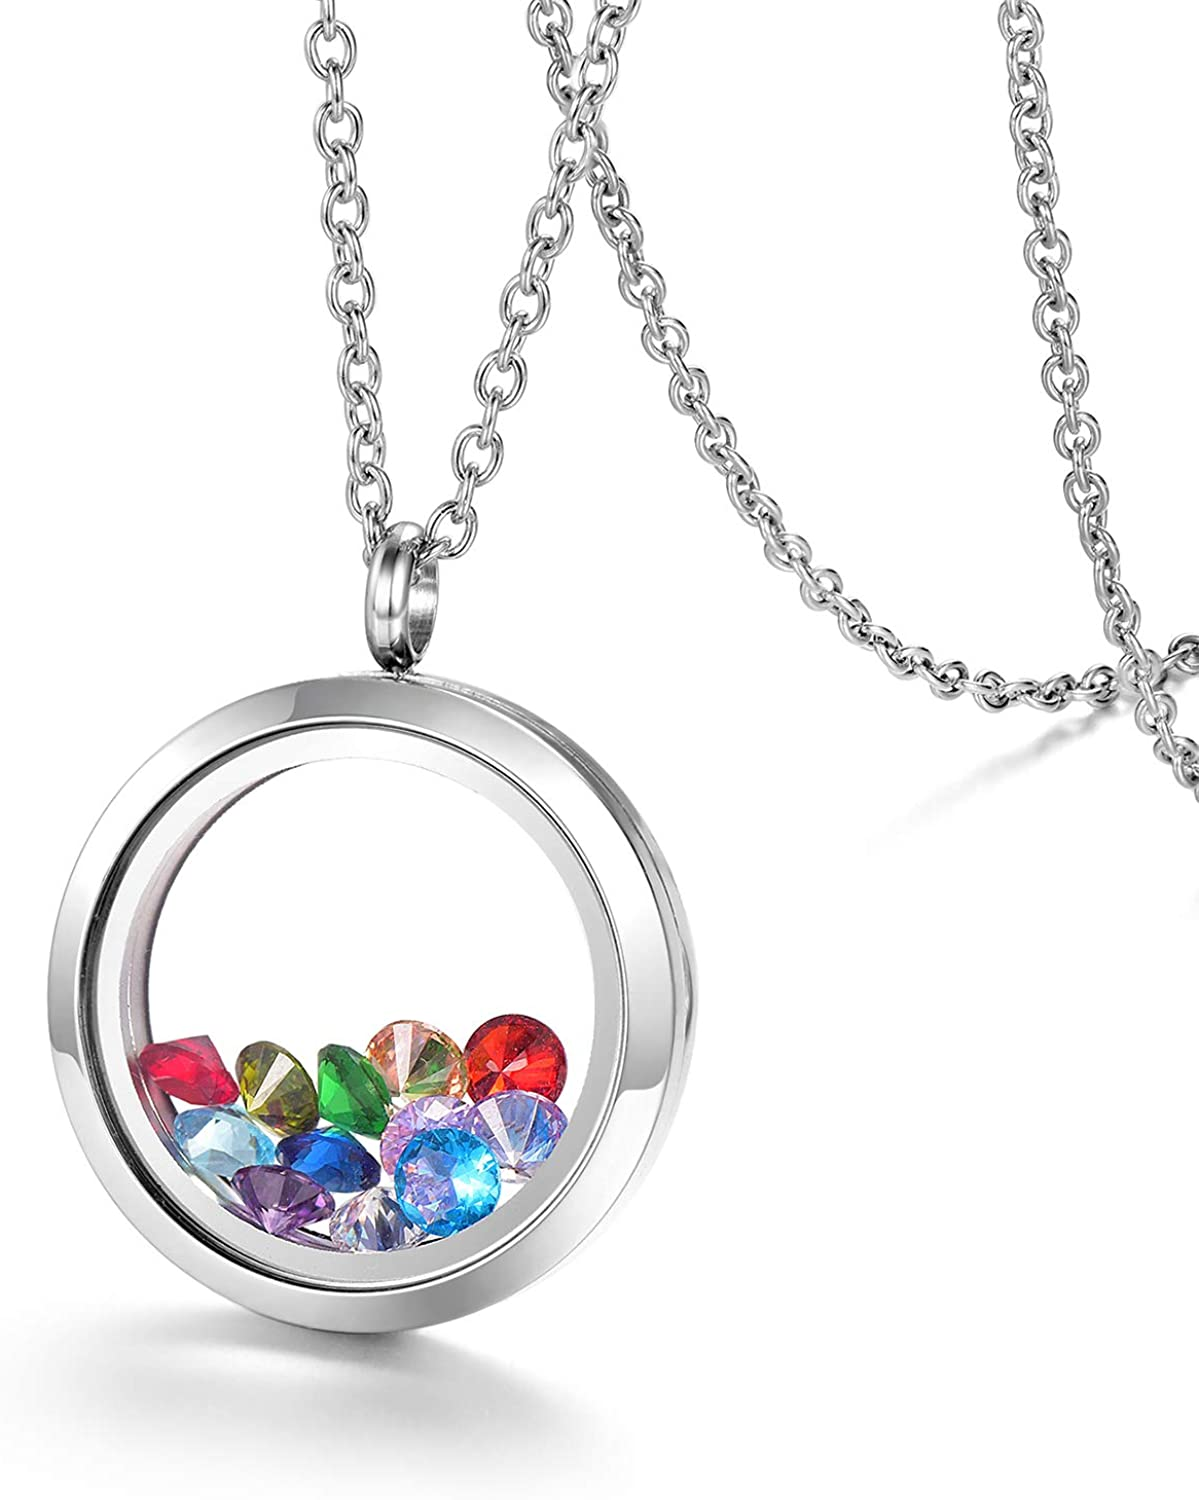 EVERLEAD Stainless Steel Living Memory Floating Charms Locket Necklace with Chain and a Set of Birthstones